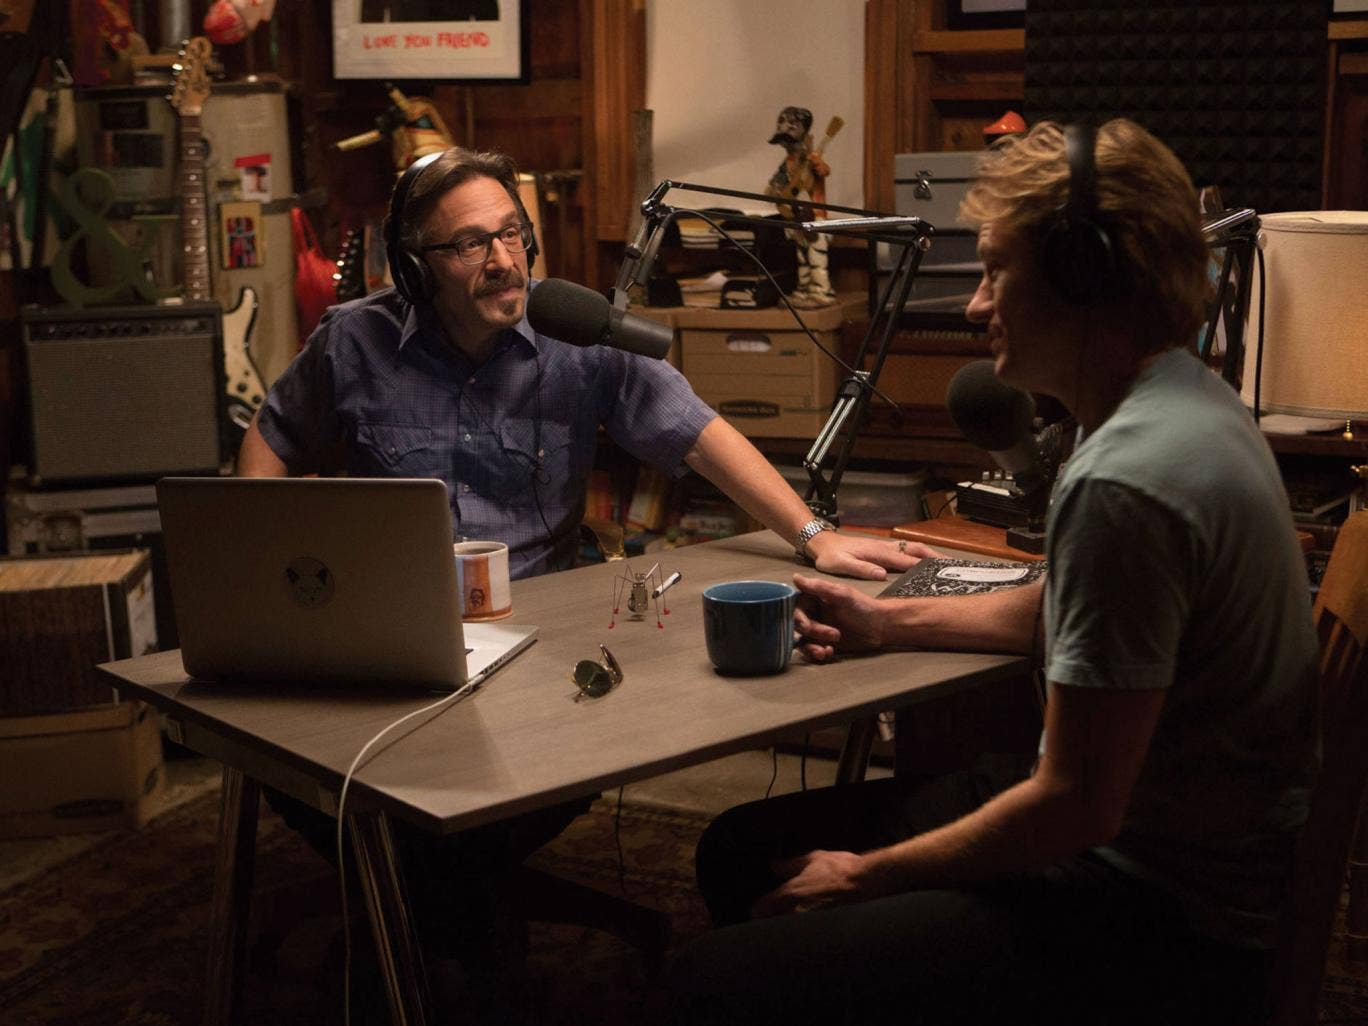 'Maron' stars the US stand-up Marc Maron (left) as himself